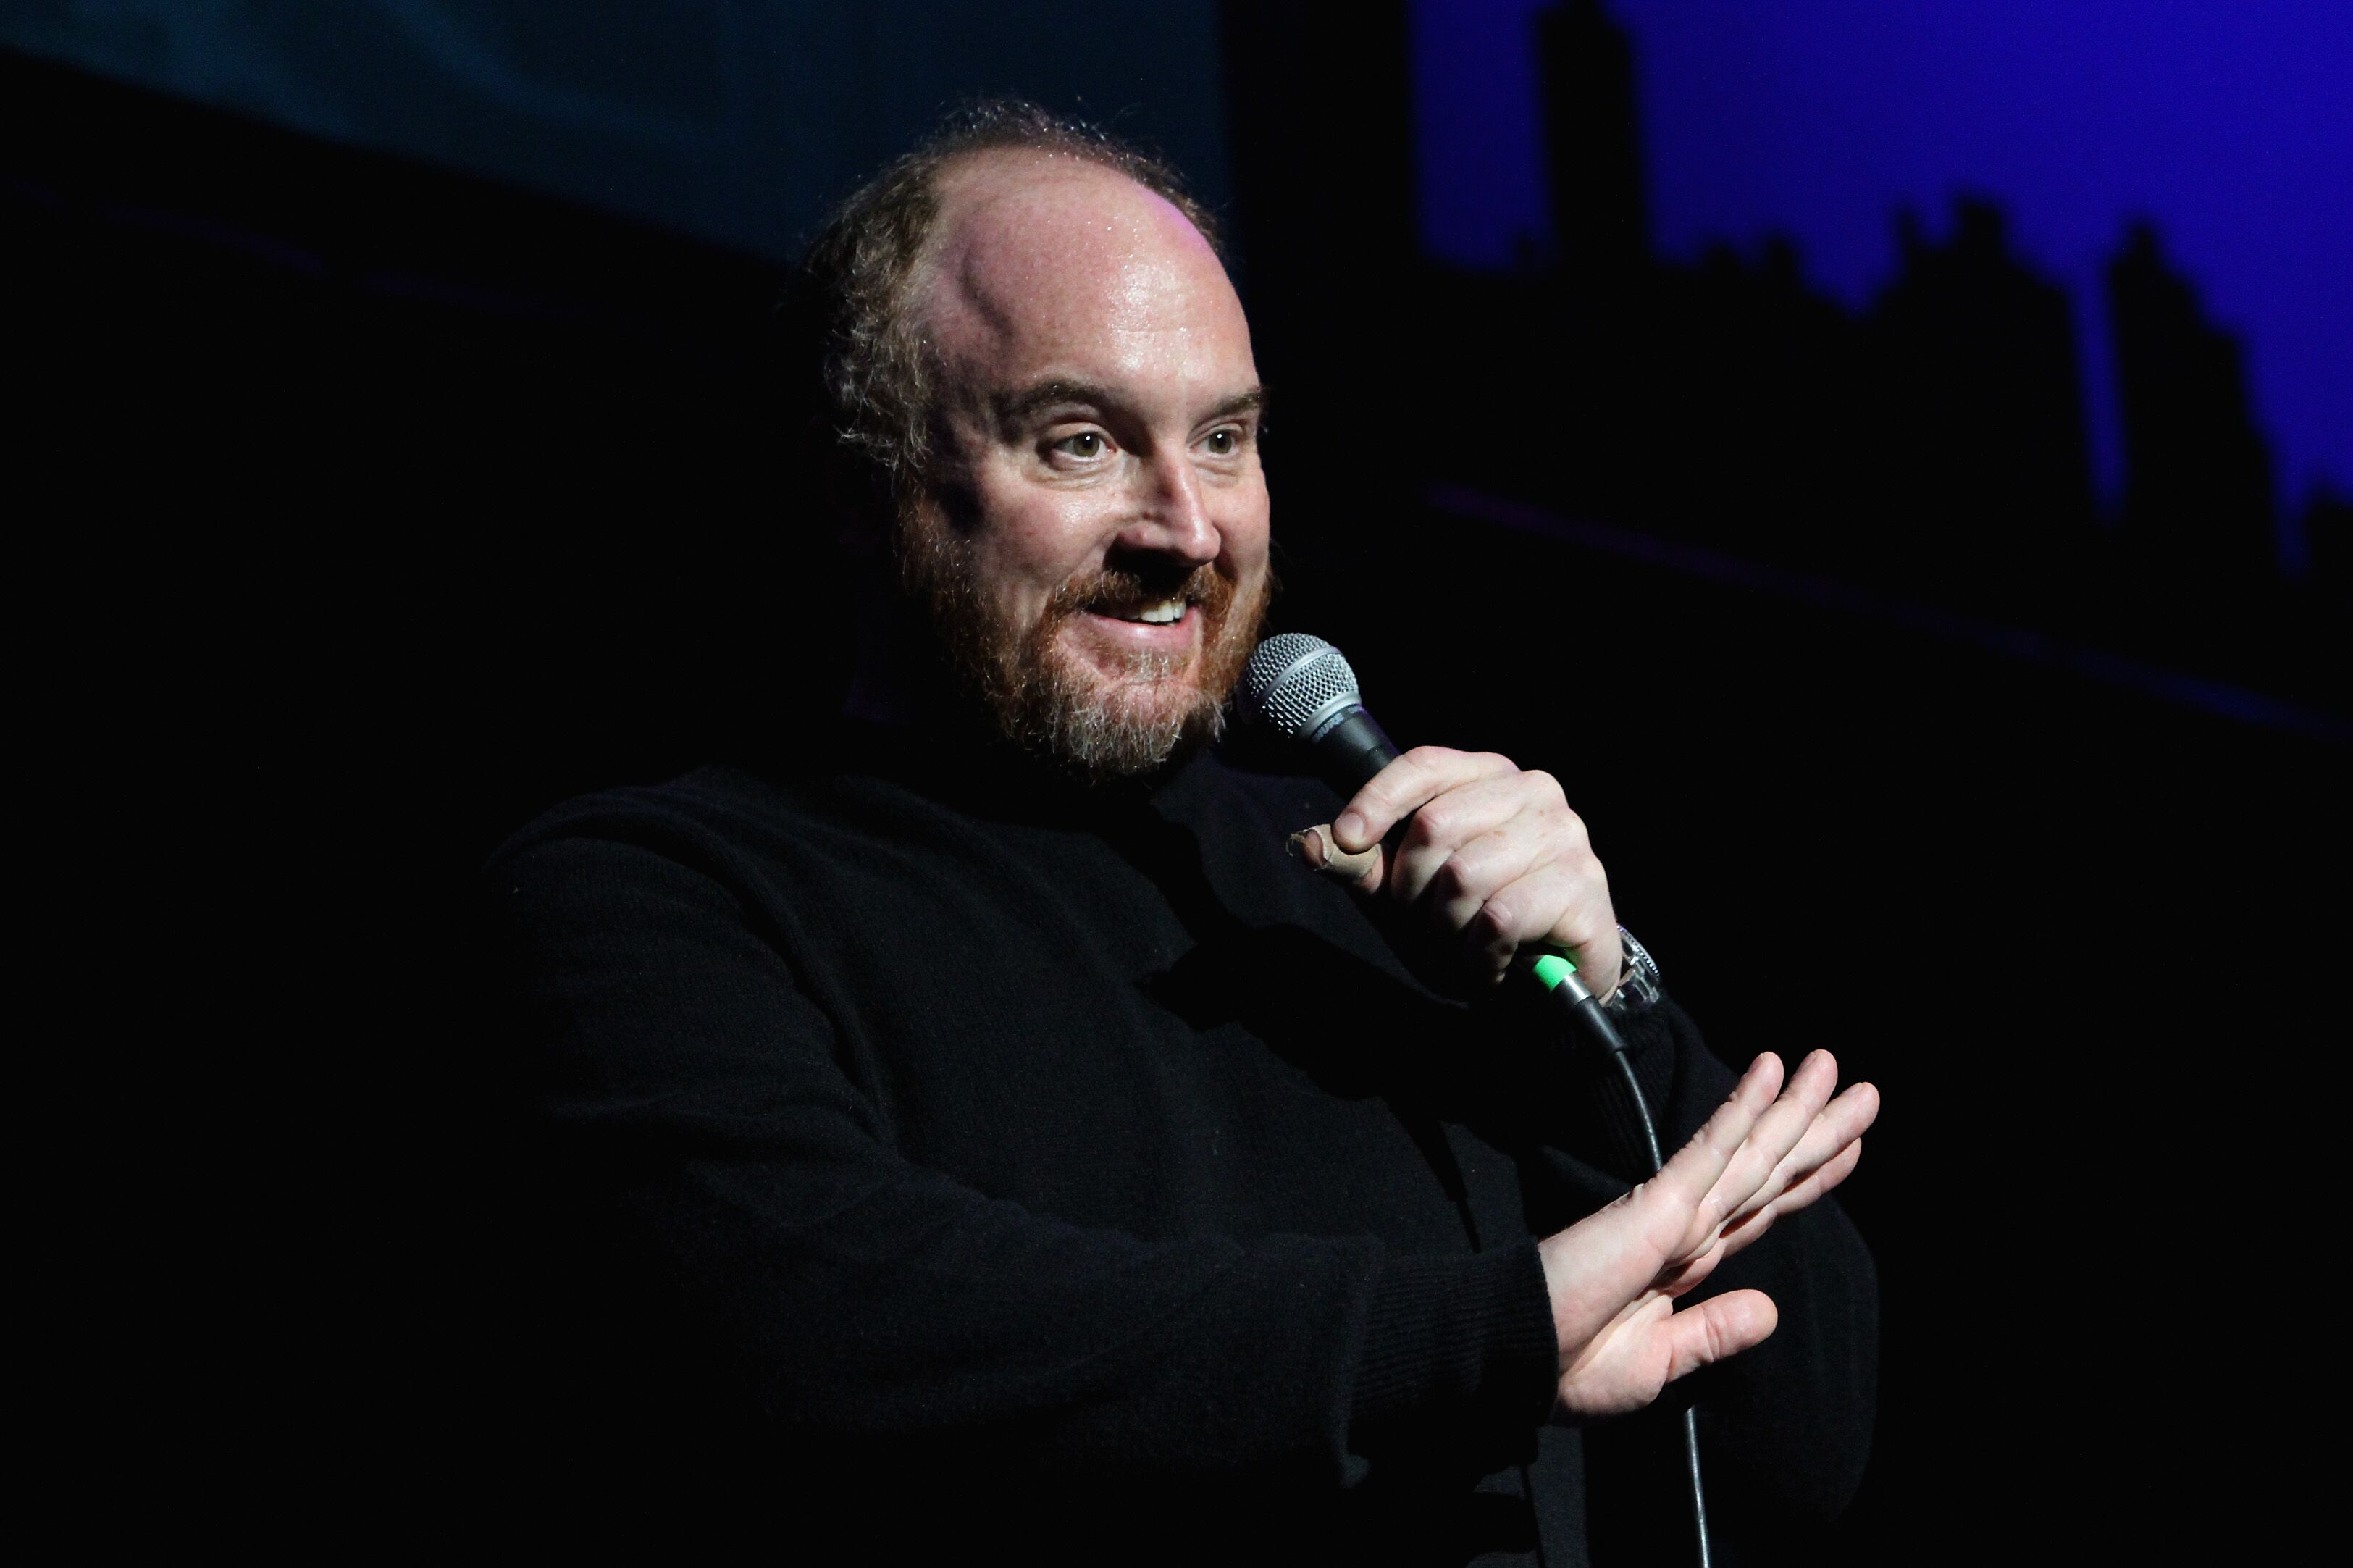 In 2003 Abby Schachner called Louis CK to invite him to one of her shows and during the phone conversation she said she could hear him masturbating